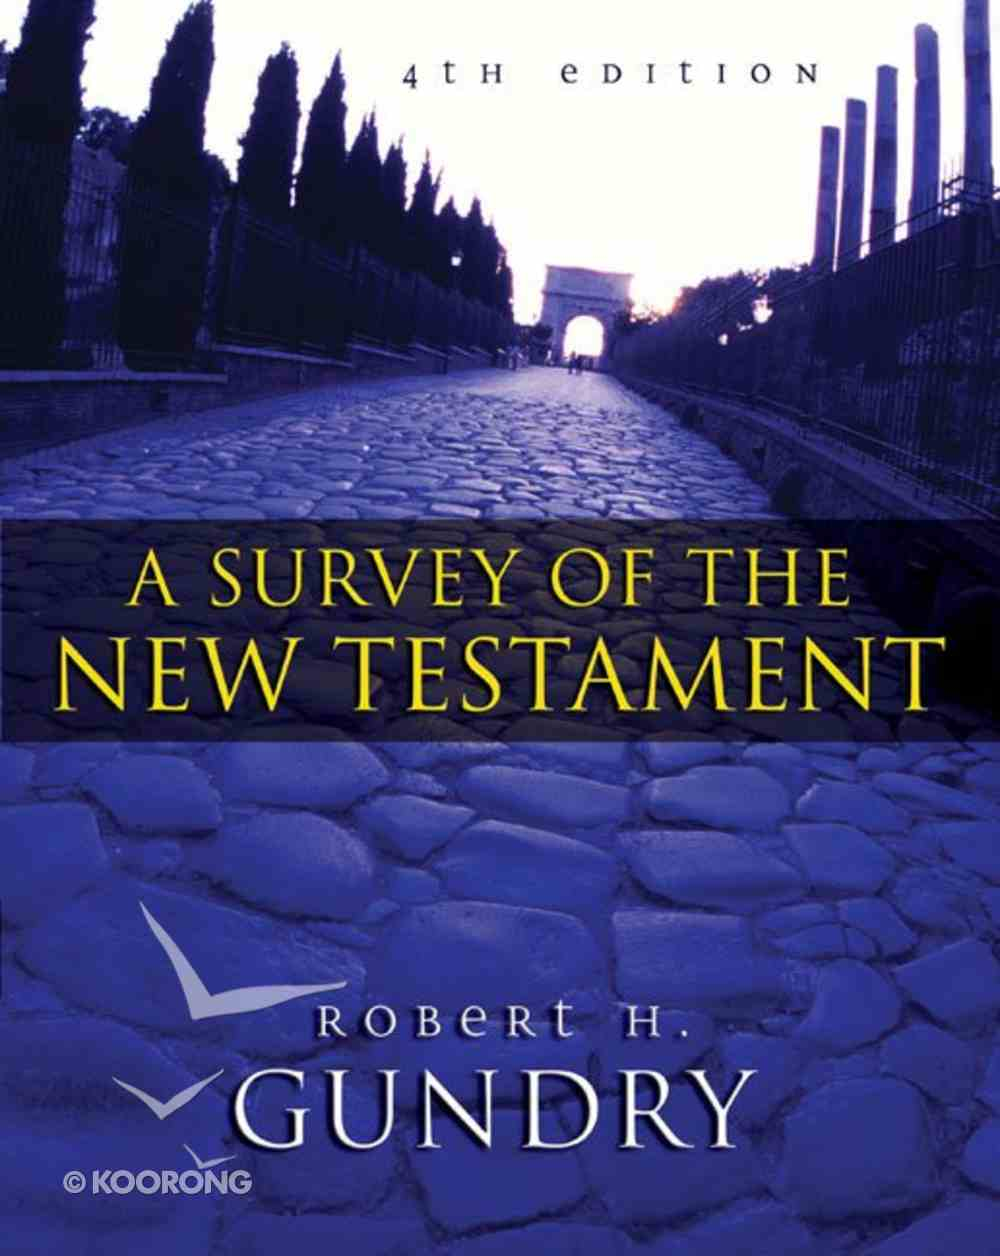 A Survey of the New Testament (4th Edition) eBook